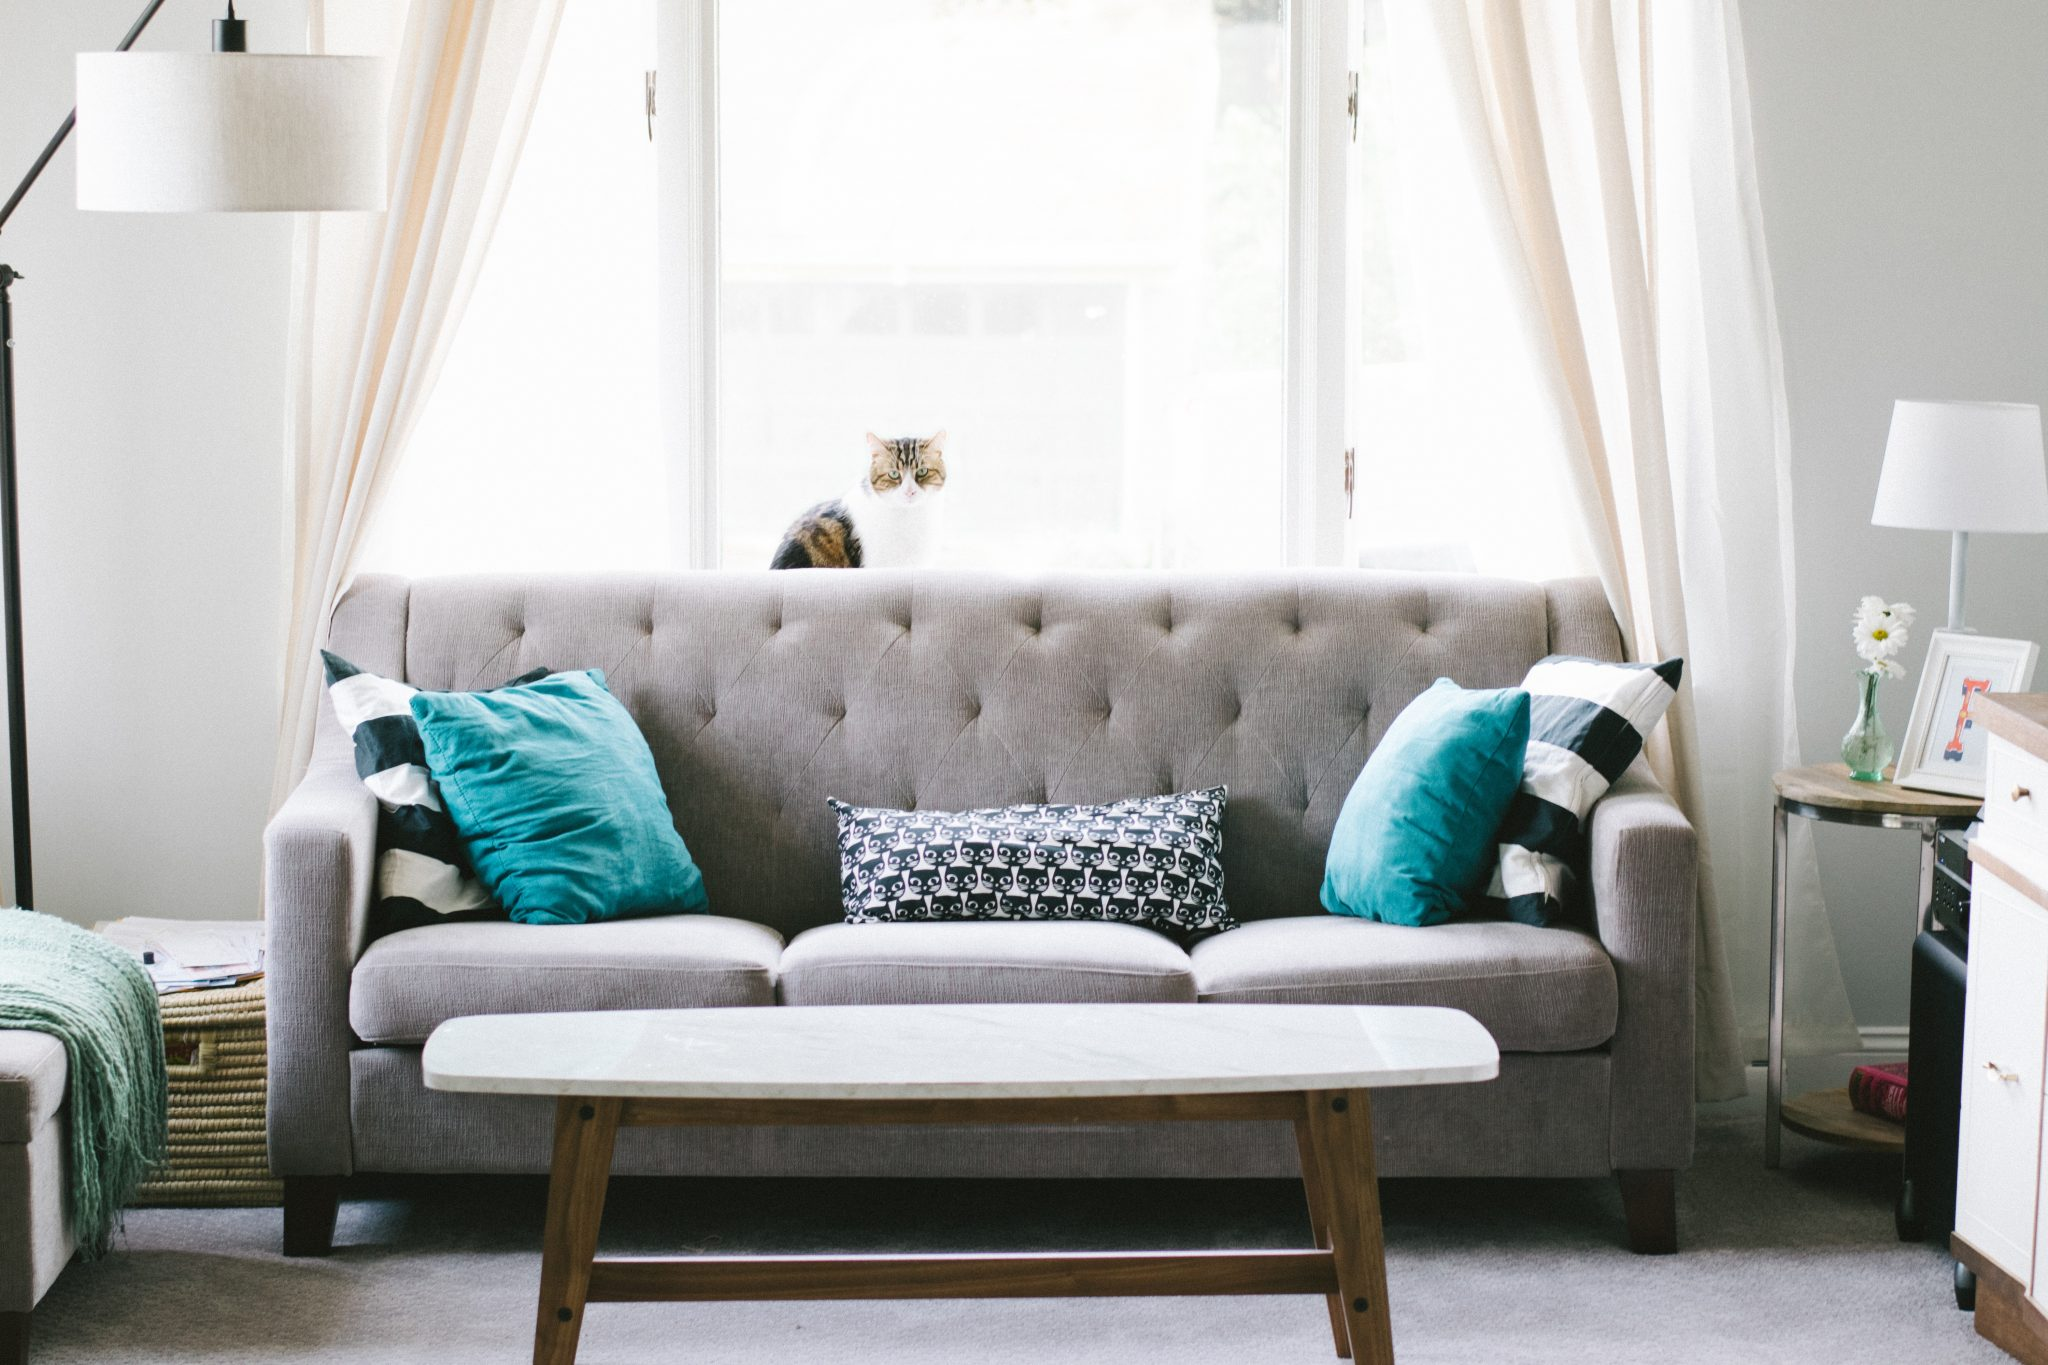 A Basic Guide To Redecorating Your Living Room - Pretty Big Butterflies